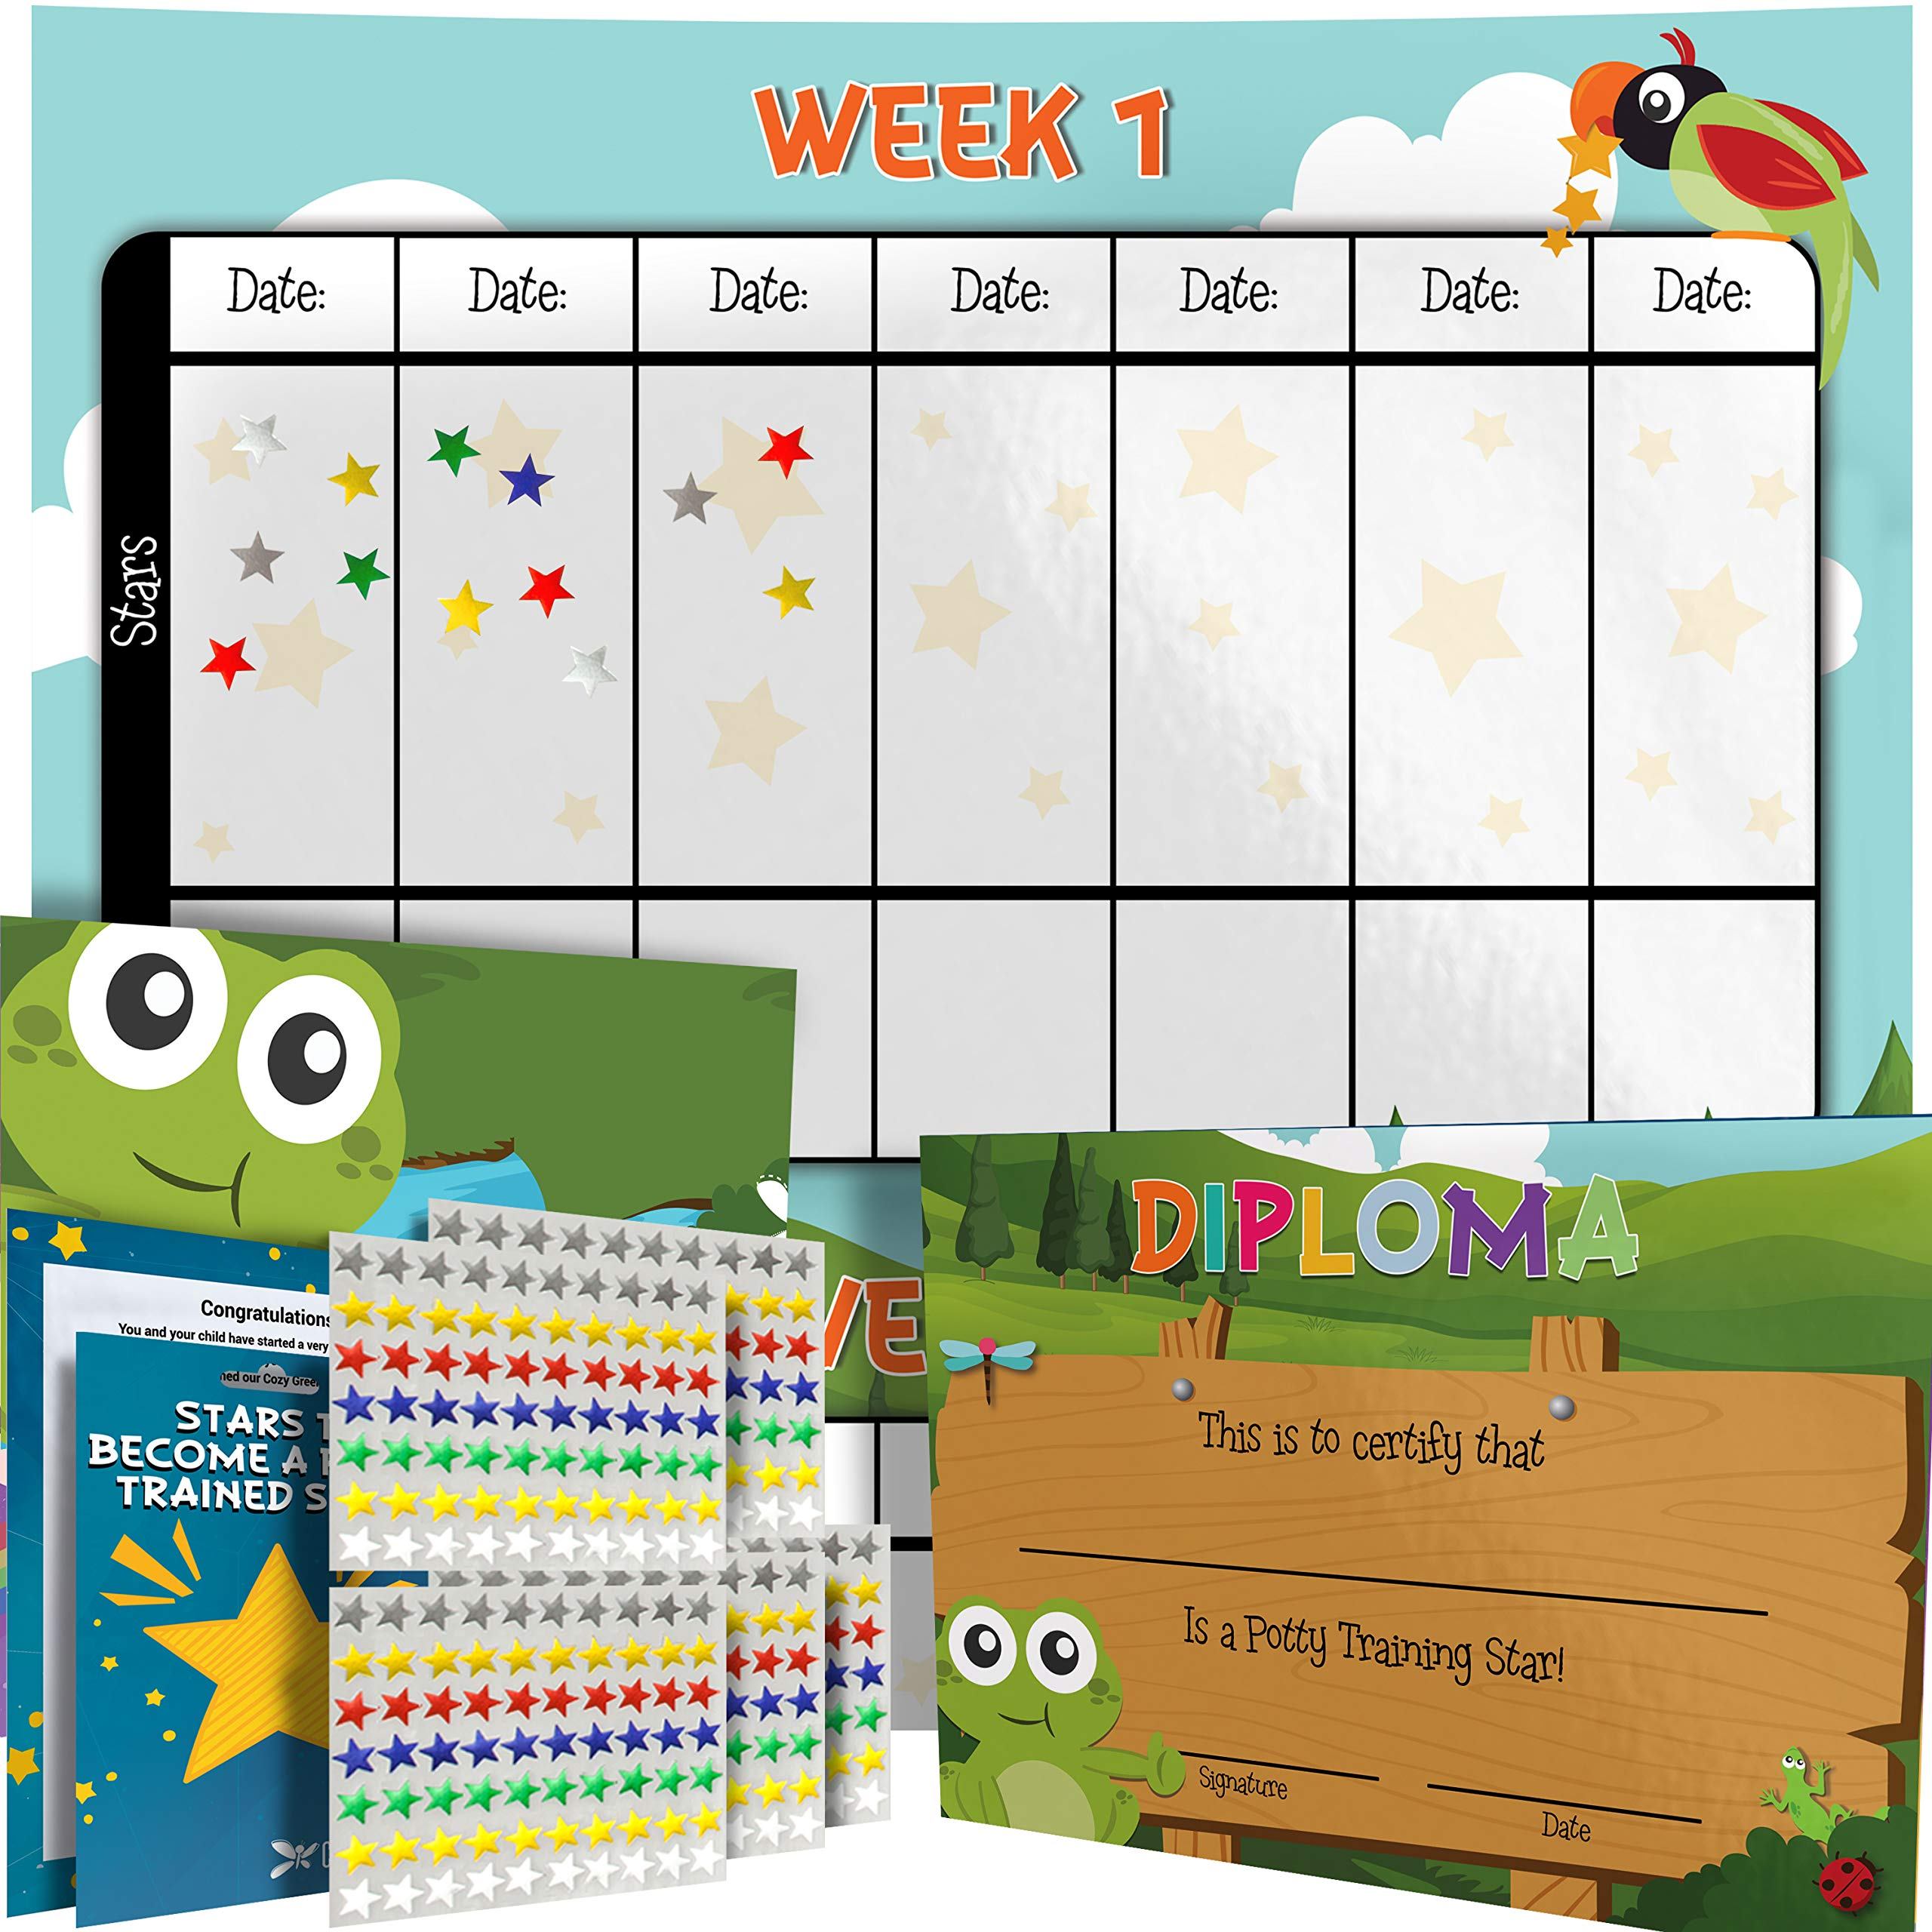 Potty Training Chart - Reward Sticker Chart - Girls Theme - Marks Behavior Progress – Motivational Toilet Training for Toddlers and Children – Great for Boys and for Girls (Forest Theme)